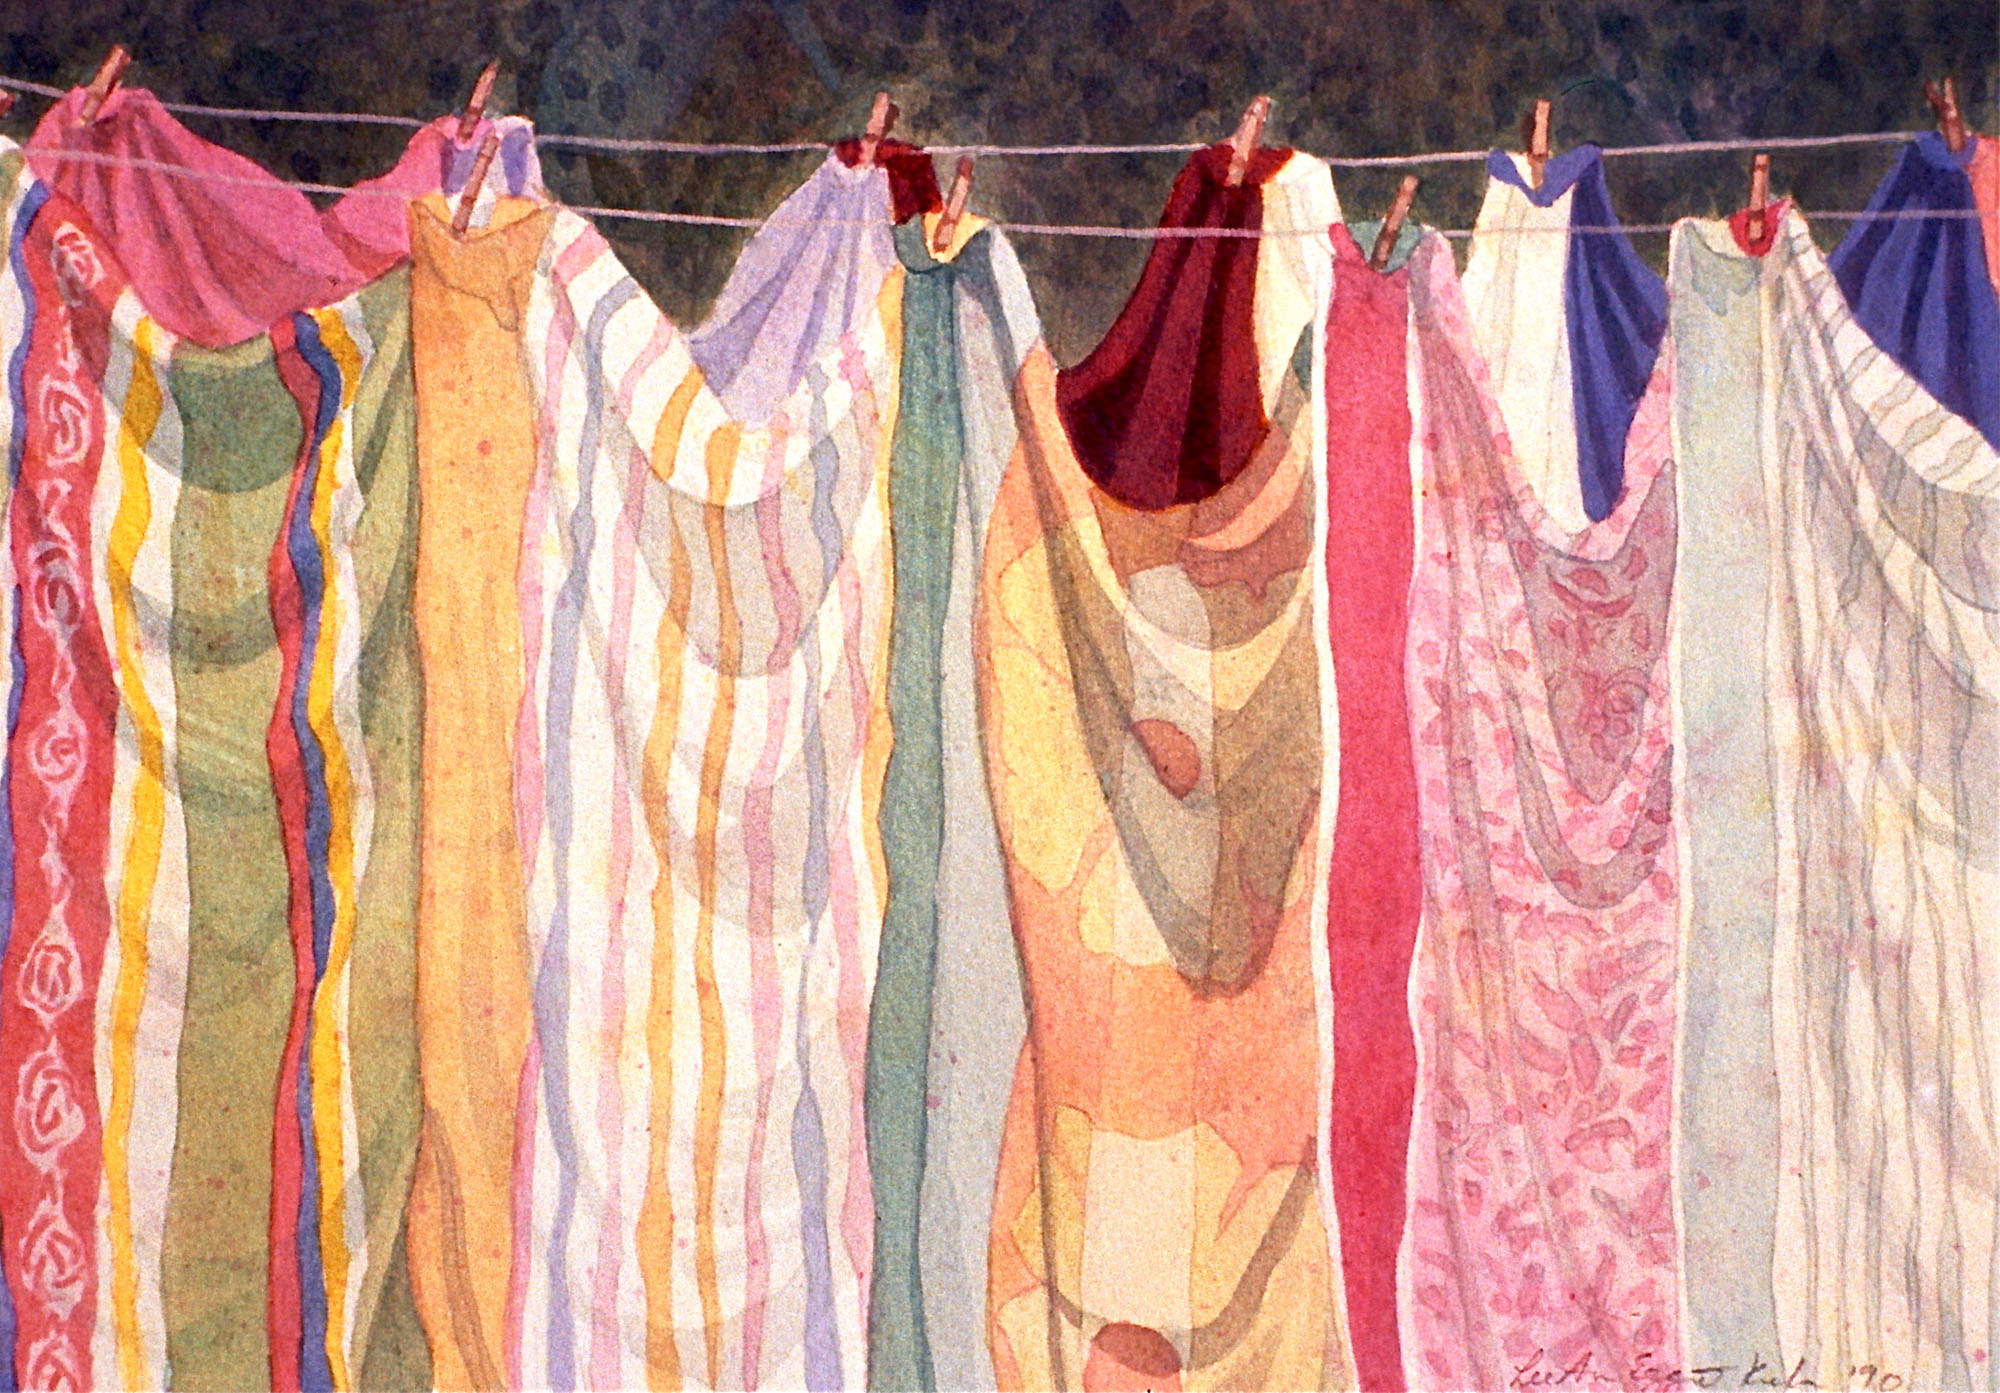 Sunline by Annie Kuhn, painting of towels hung across a clothesline